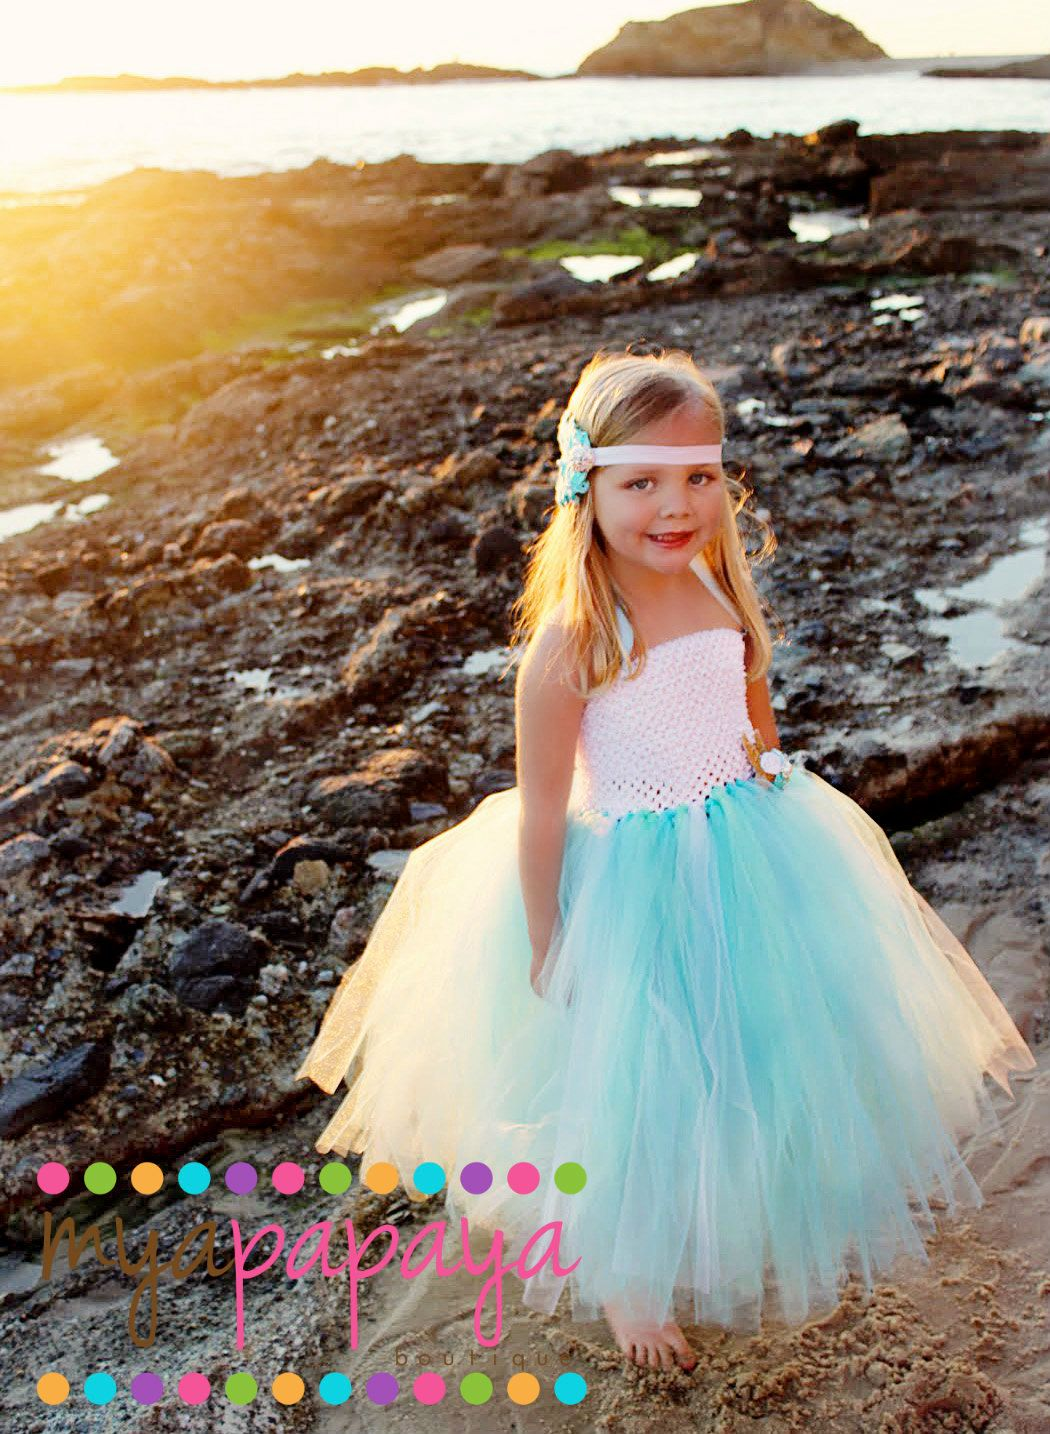 Beach wedding flower girl dresses  Mermaid Tutu Dress monthst Birthday Costume Photo shoot